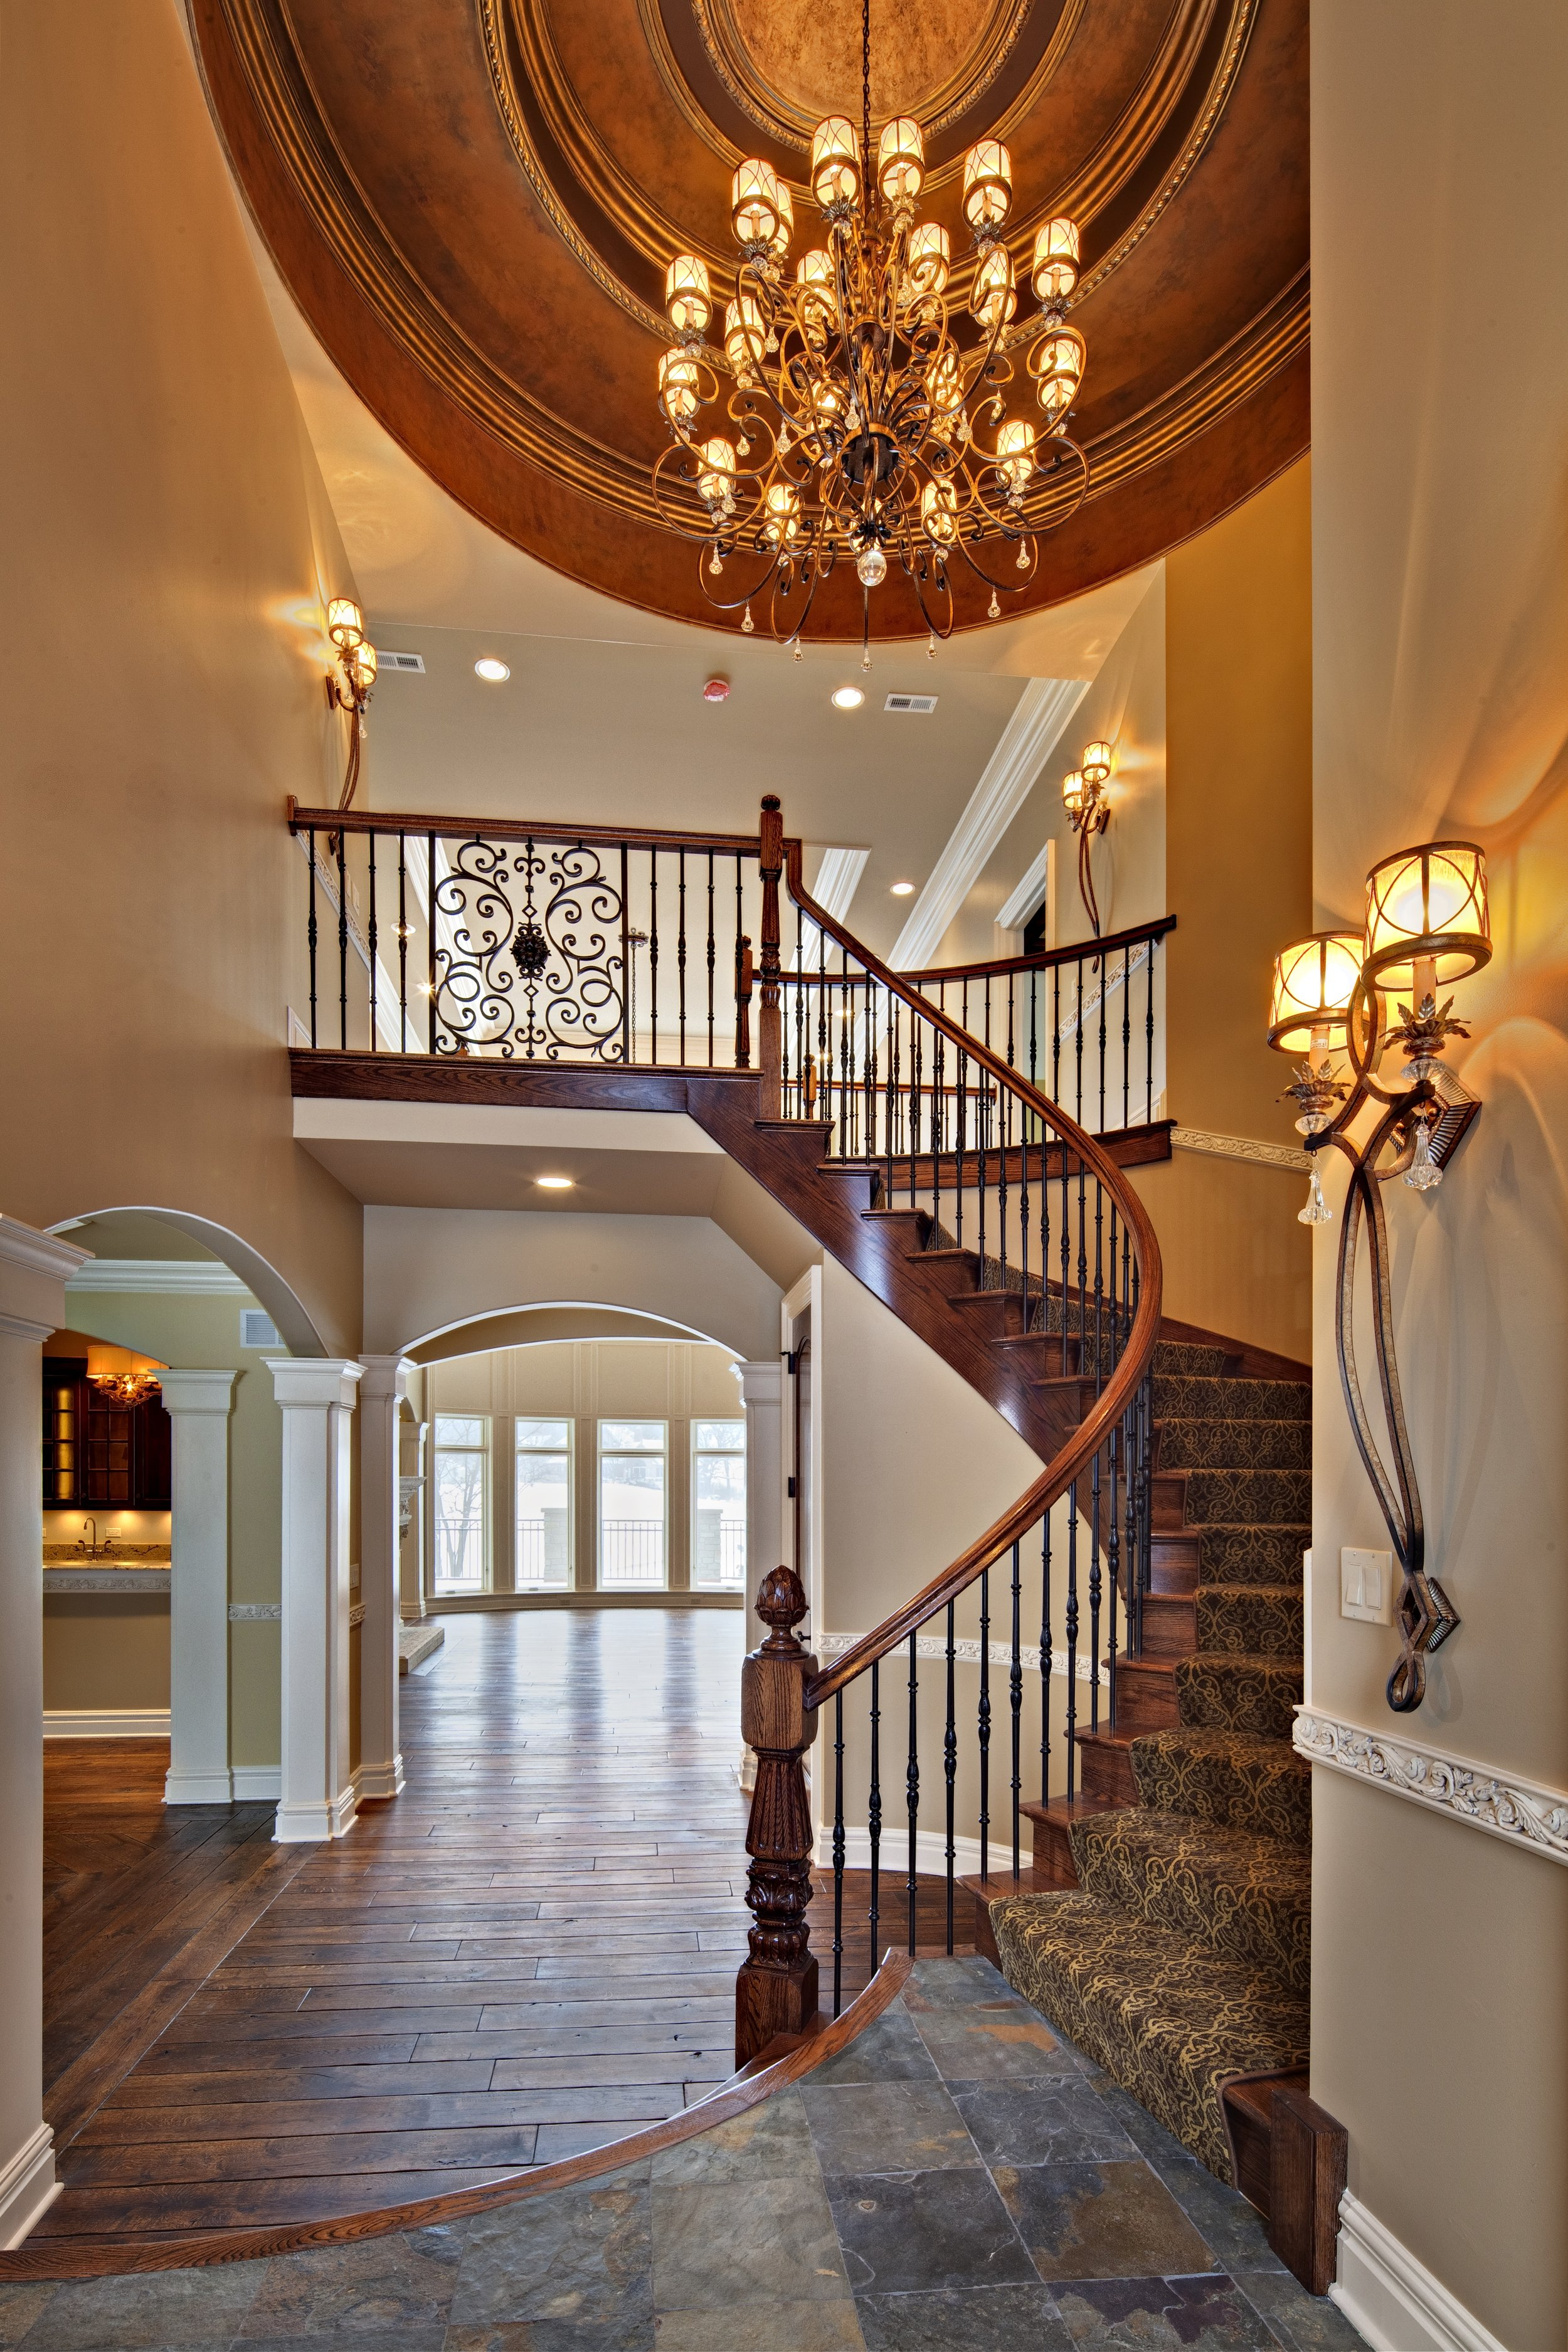 Grand Entry in this Illinois Castle